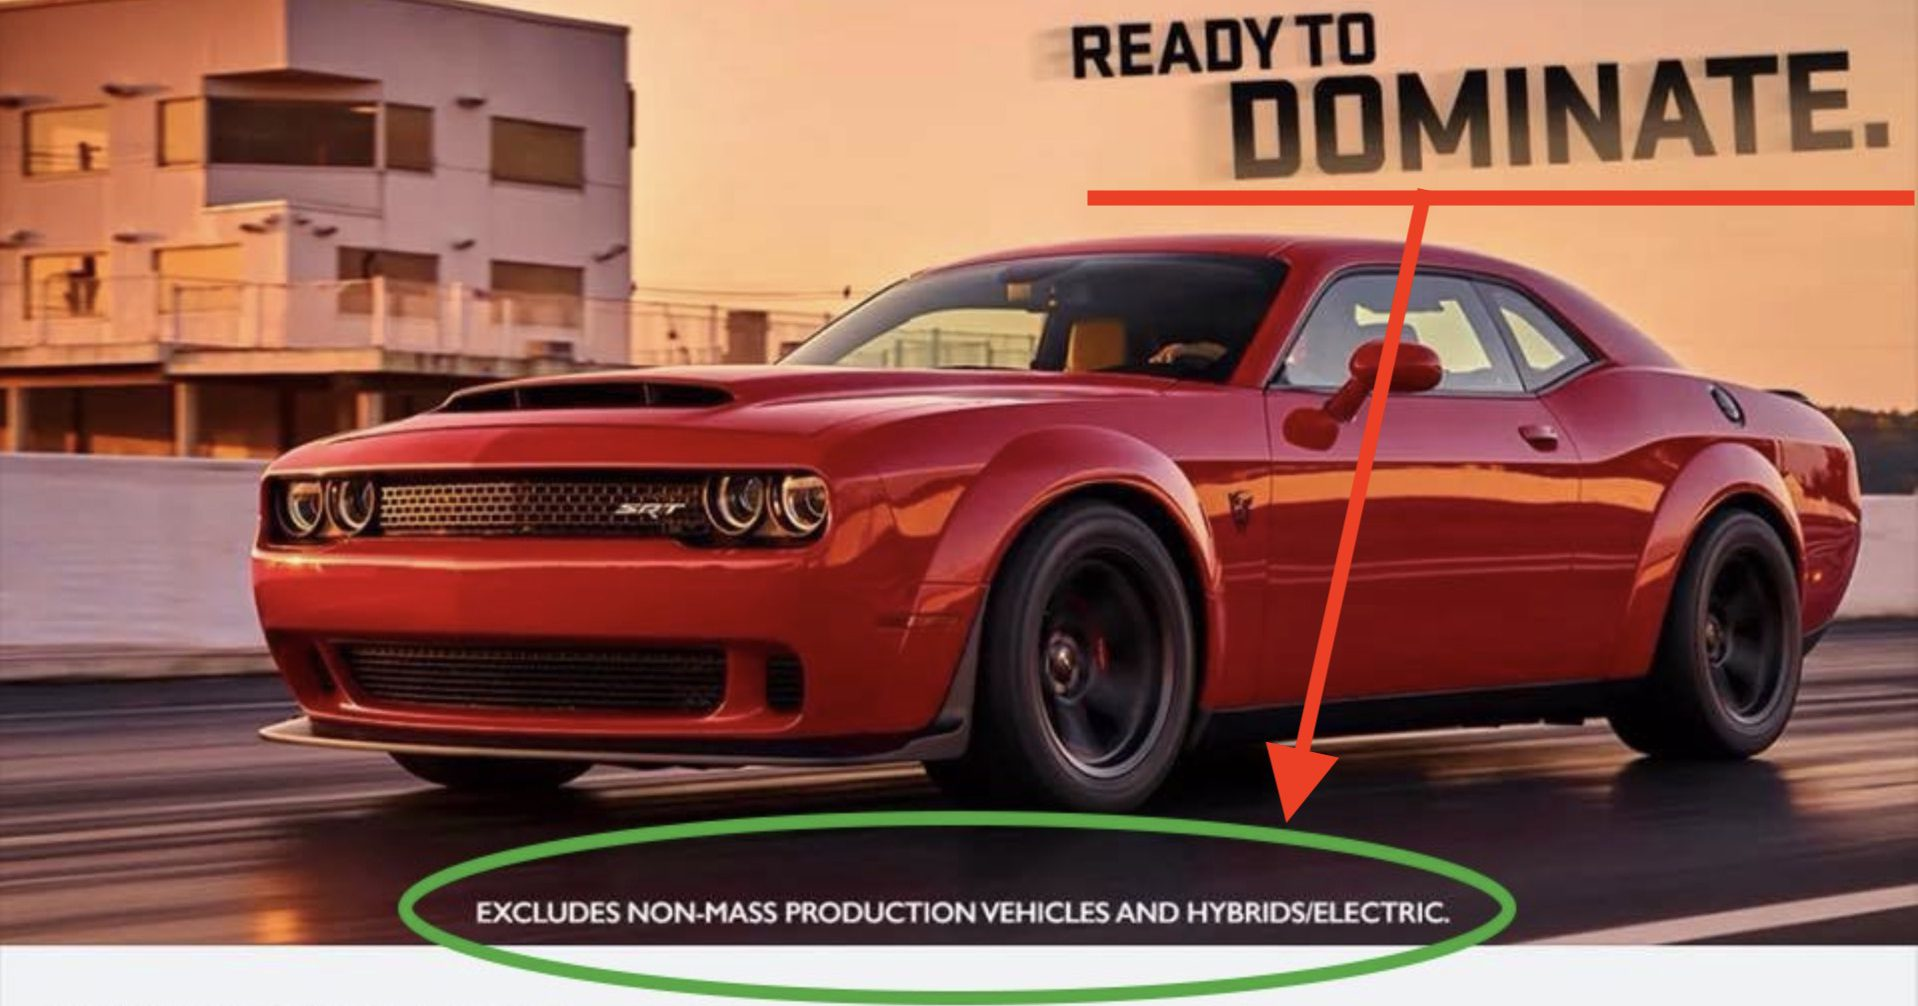 dodge electric car 2017 Dodge Challenger Demon ad turns into best electric vehicle